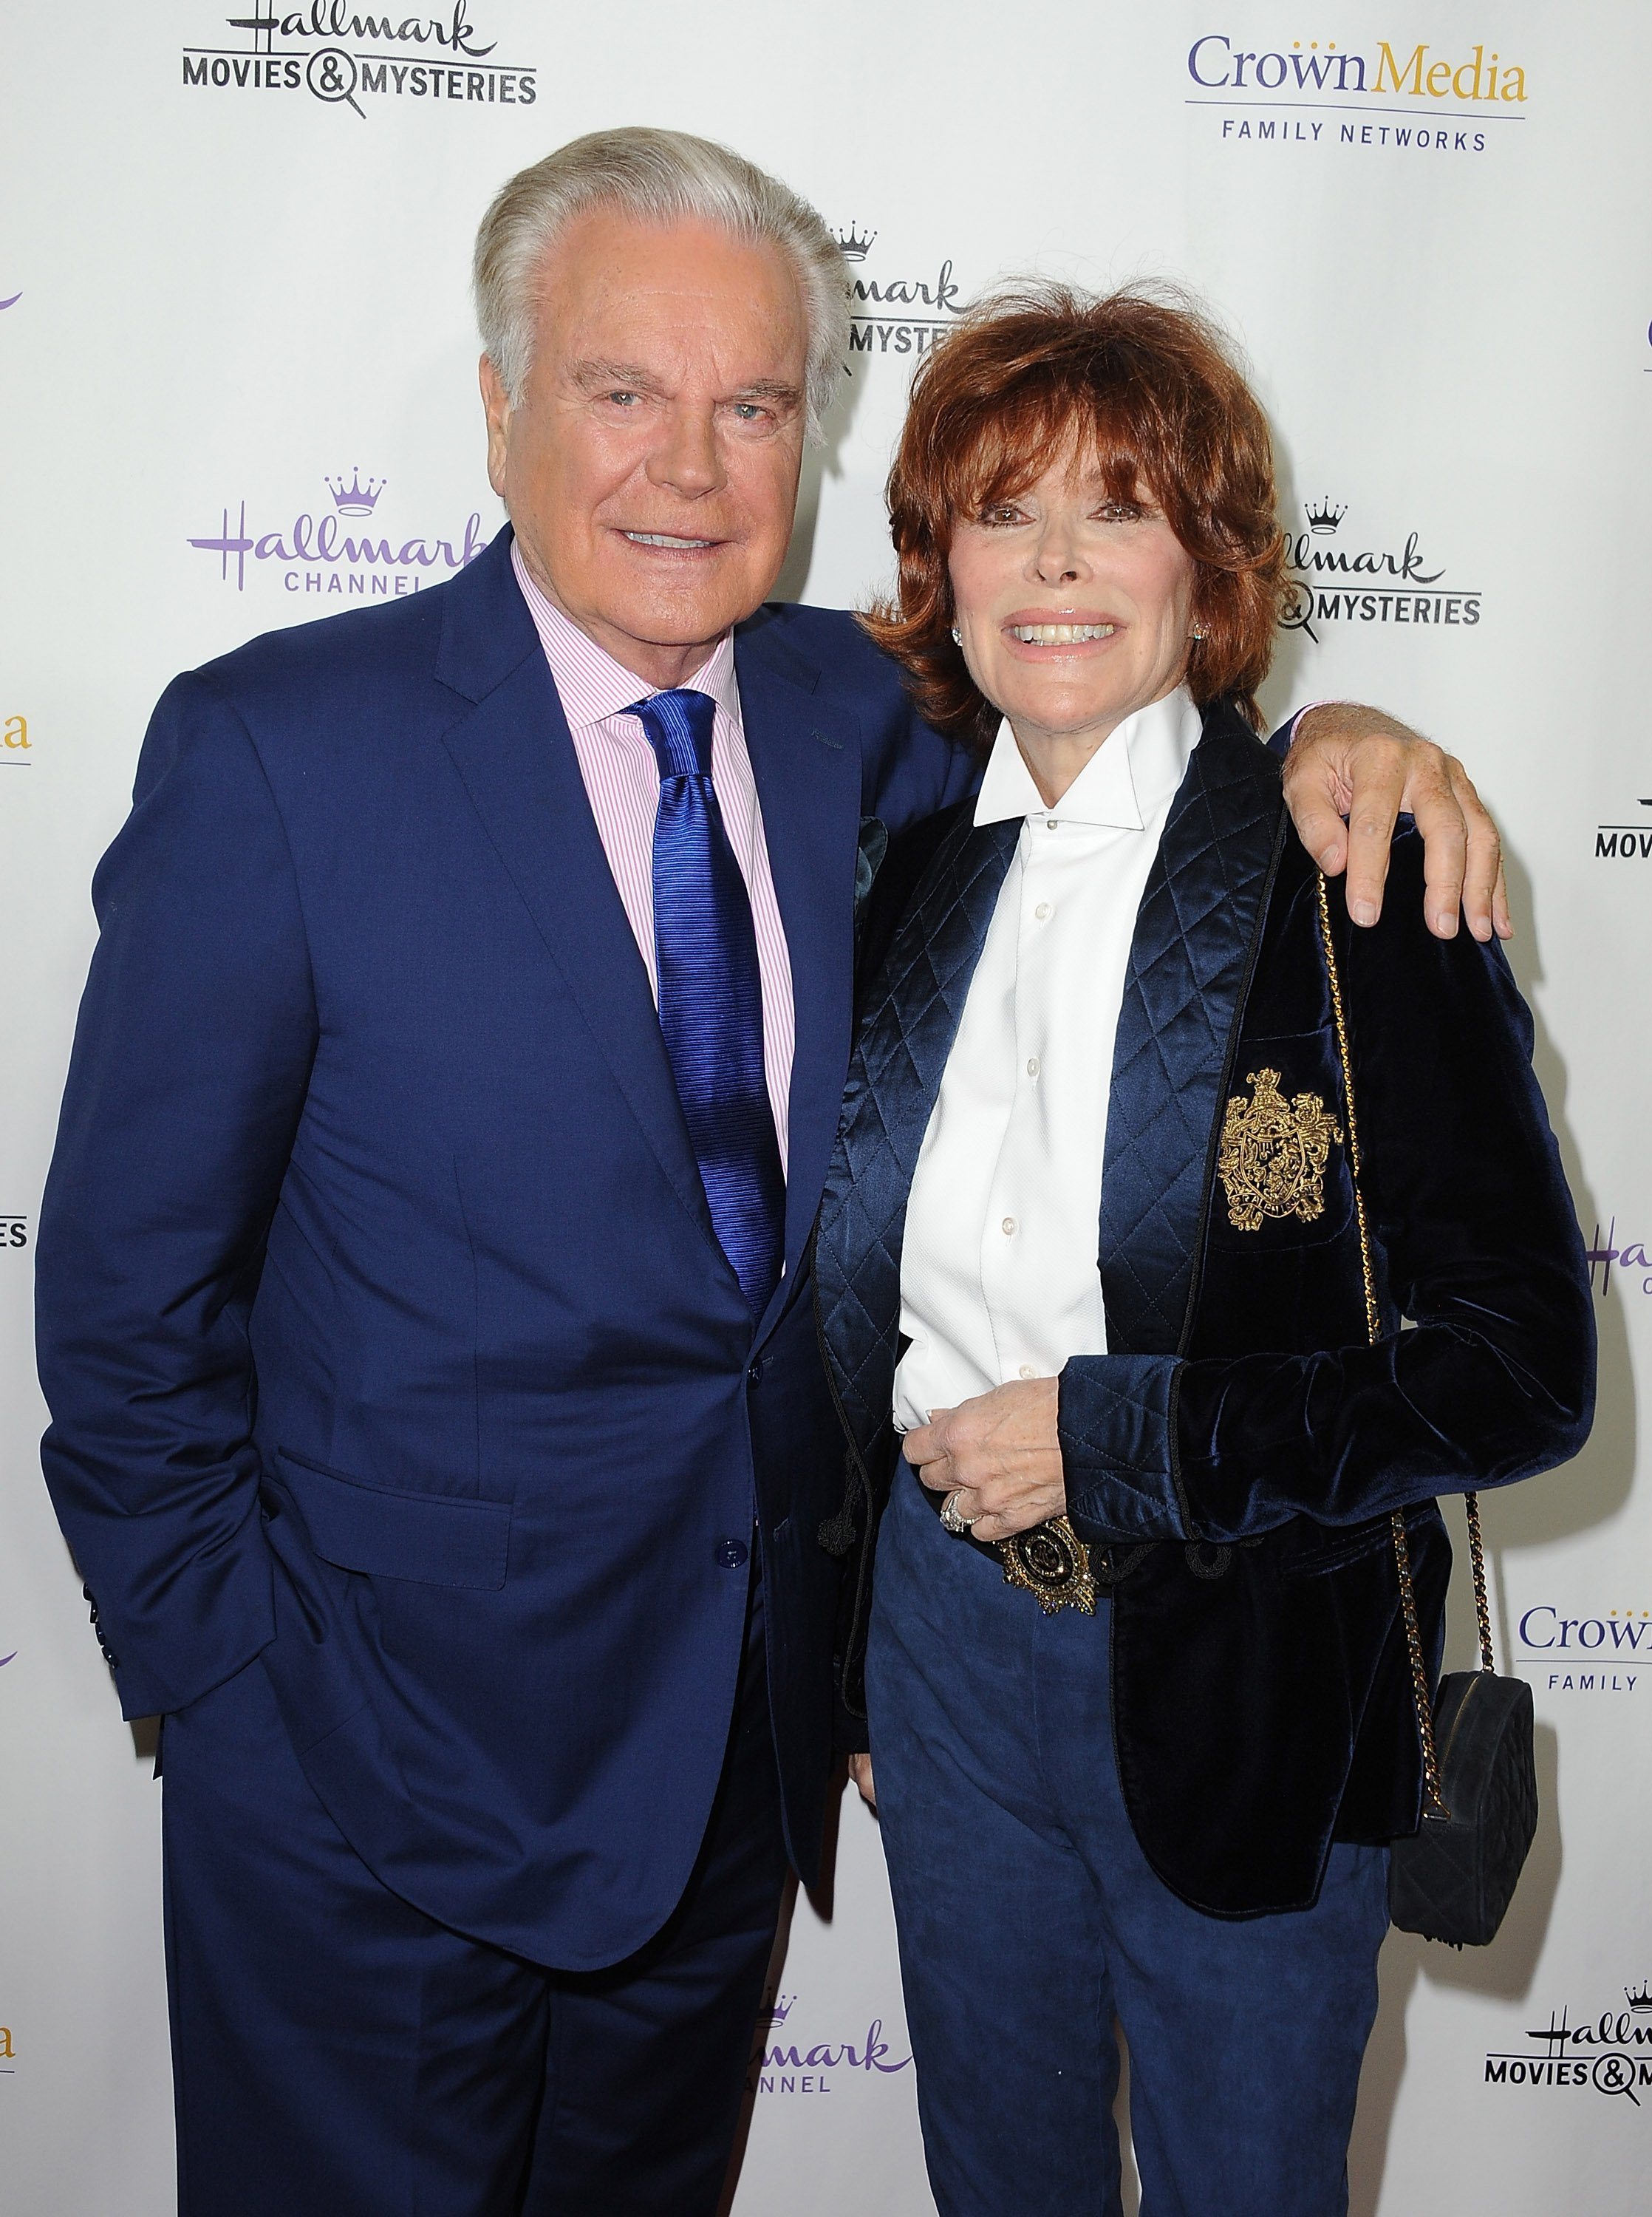 """Robert Wagner and actress Jill St. John arrive at Hallmark Channel's annual holiday event premiere screening of """"Northpole"""" at La Piazza Restaurant on November 4, 2014, in Los Angeles, California. 